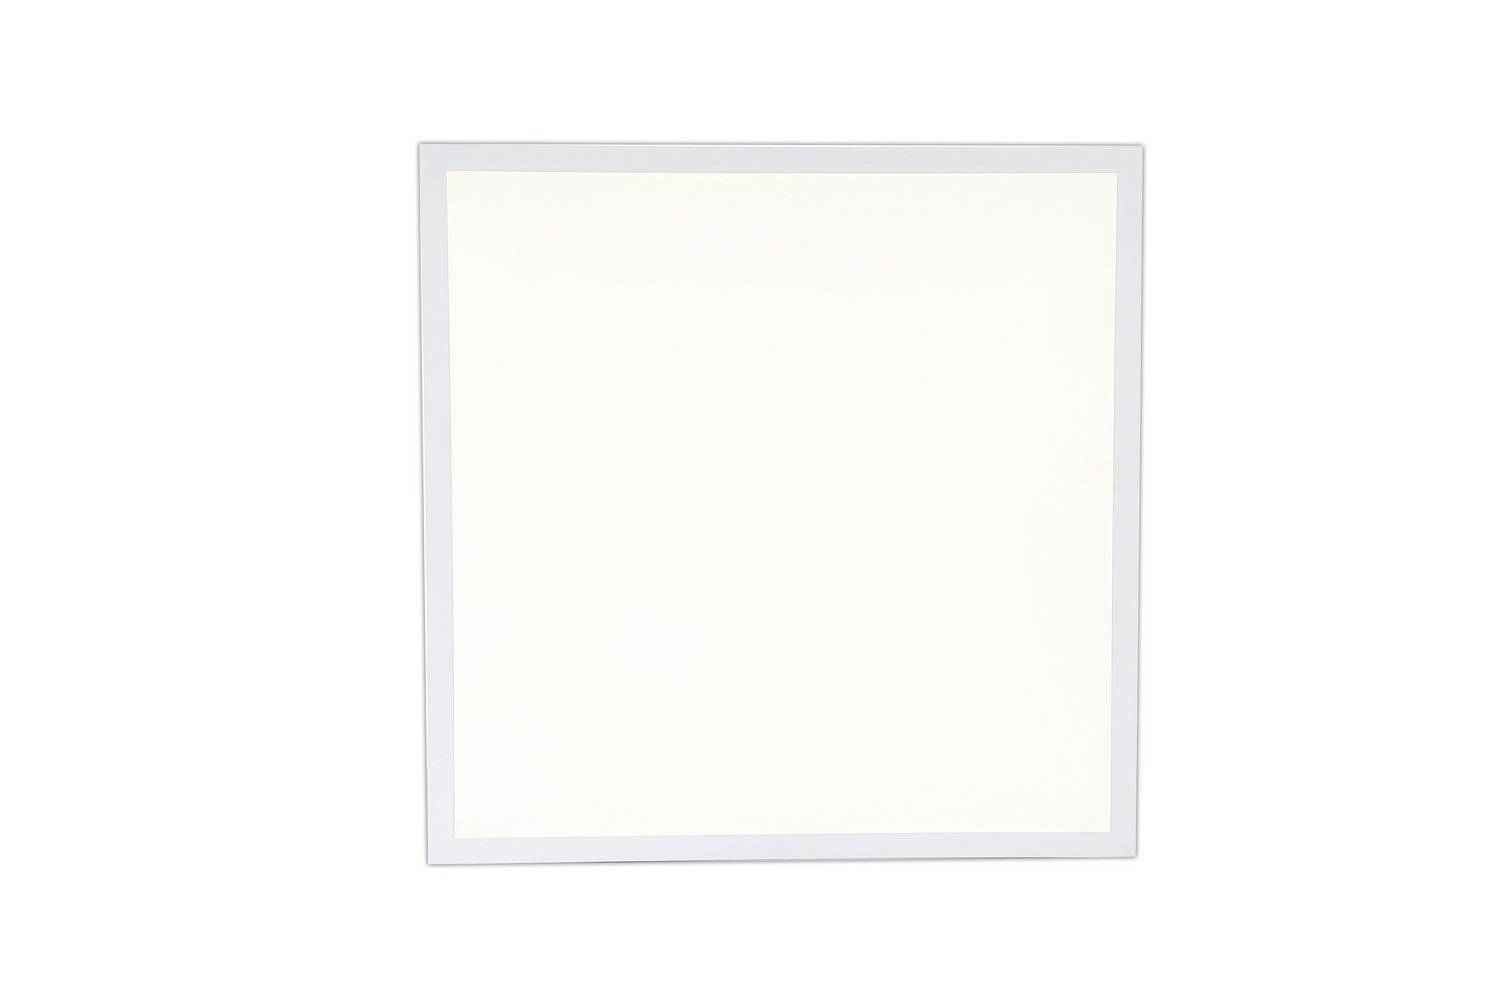 LED panel 60x60 edge-lit panel 600x600 ultra-thin led flat panel light Europe UK CE CB OHS TUV 1